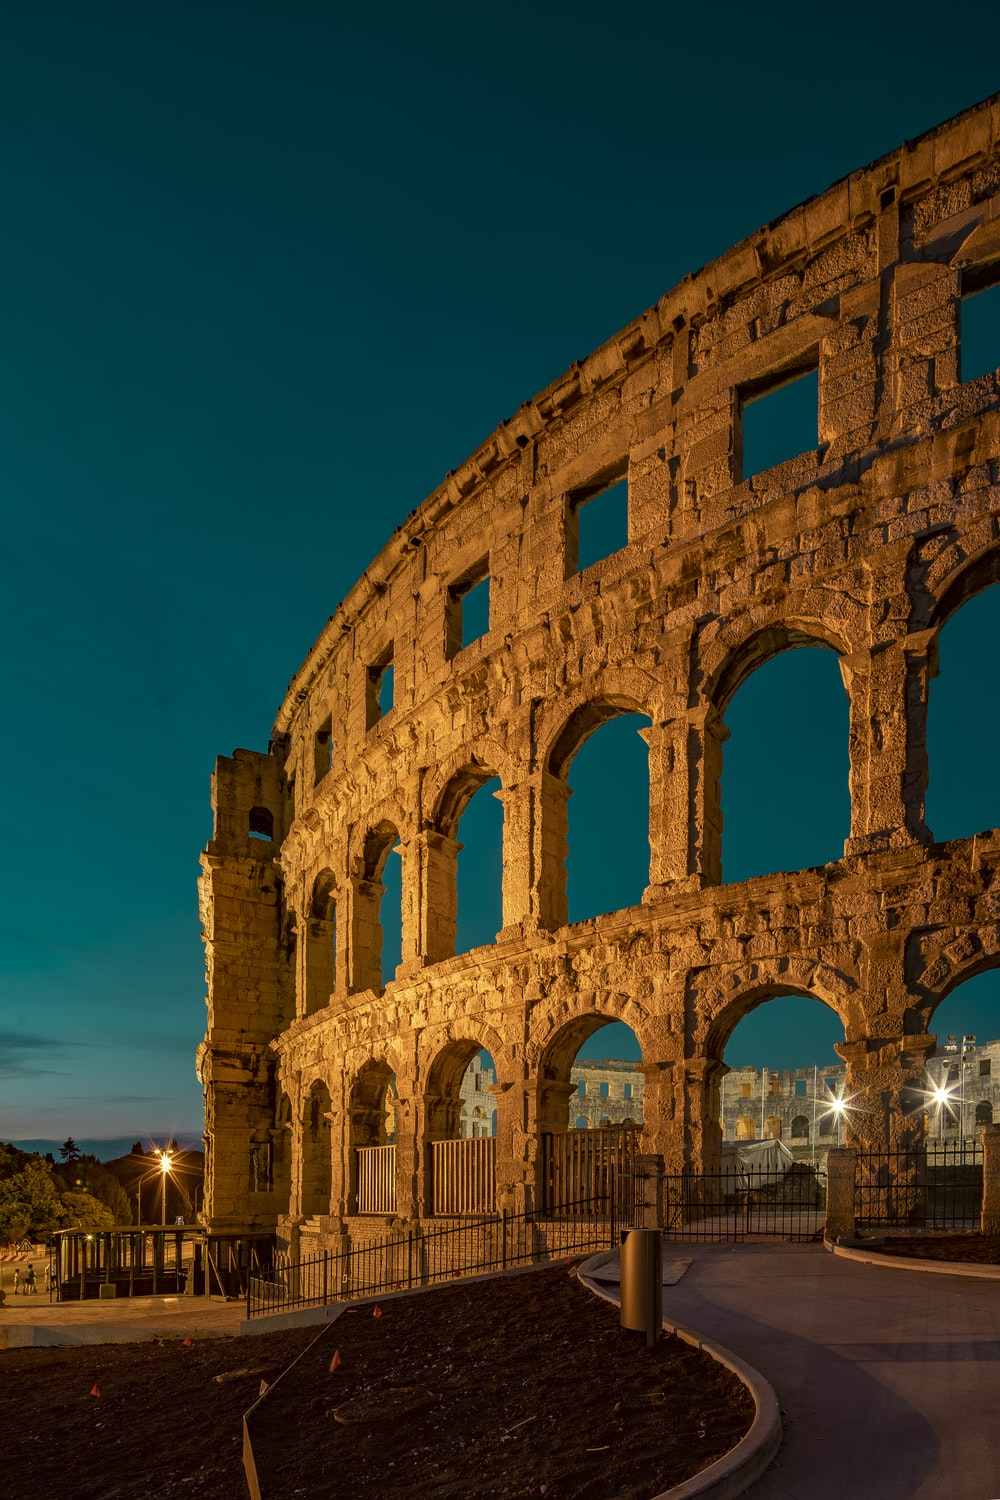 photography of brown ruin Colosseum during daytime